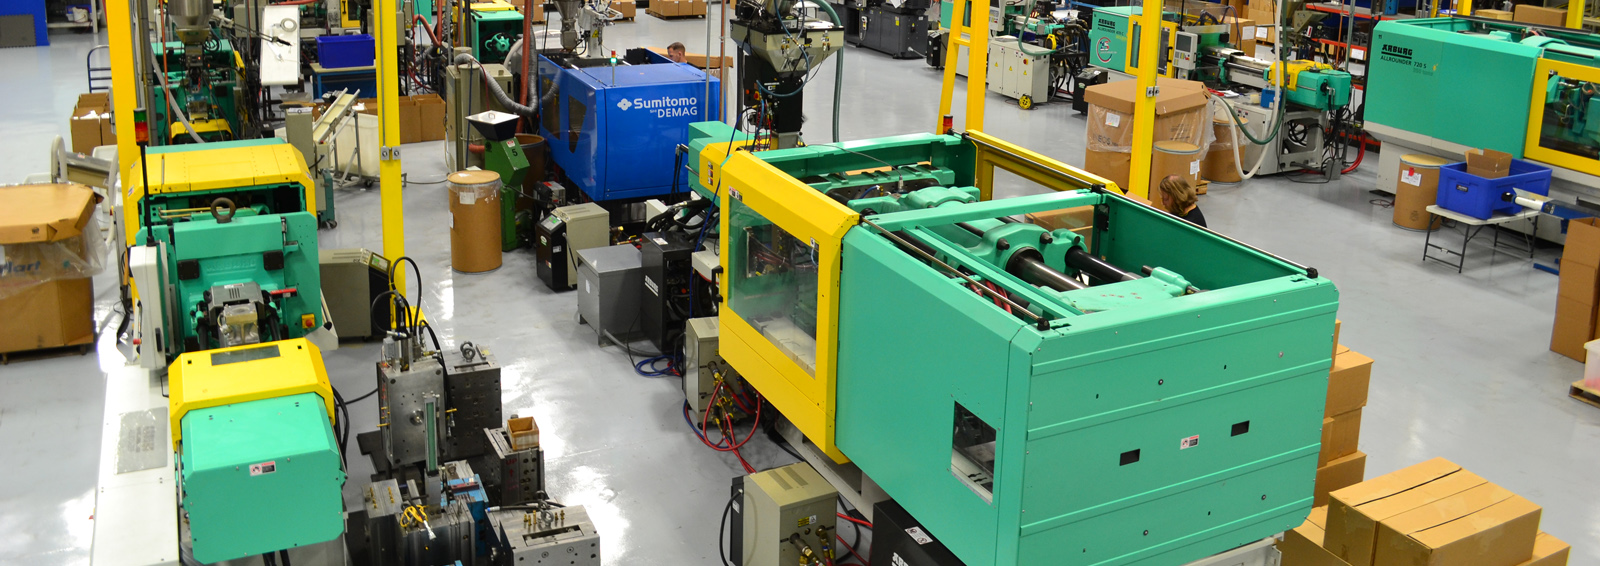 Injection Molding | Accurate Plastics & Mold Co